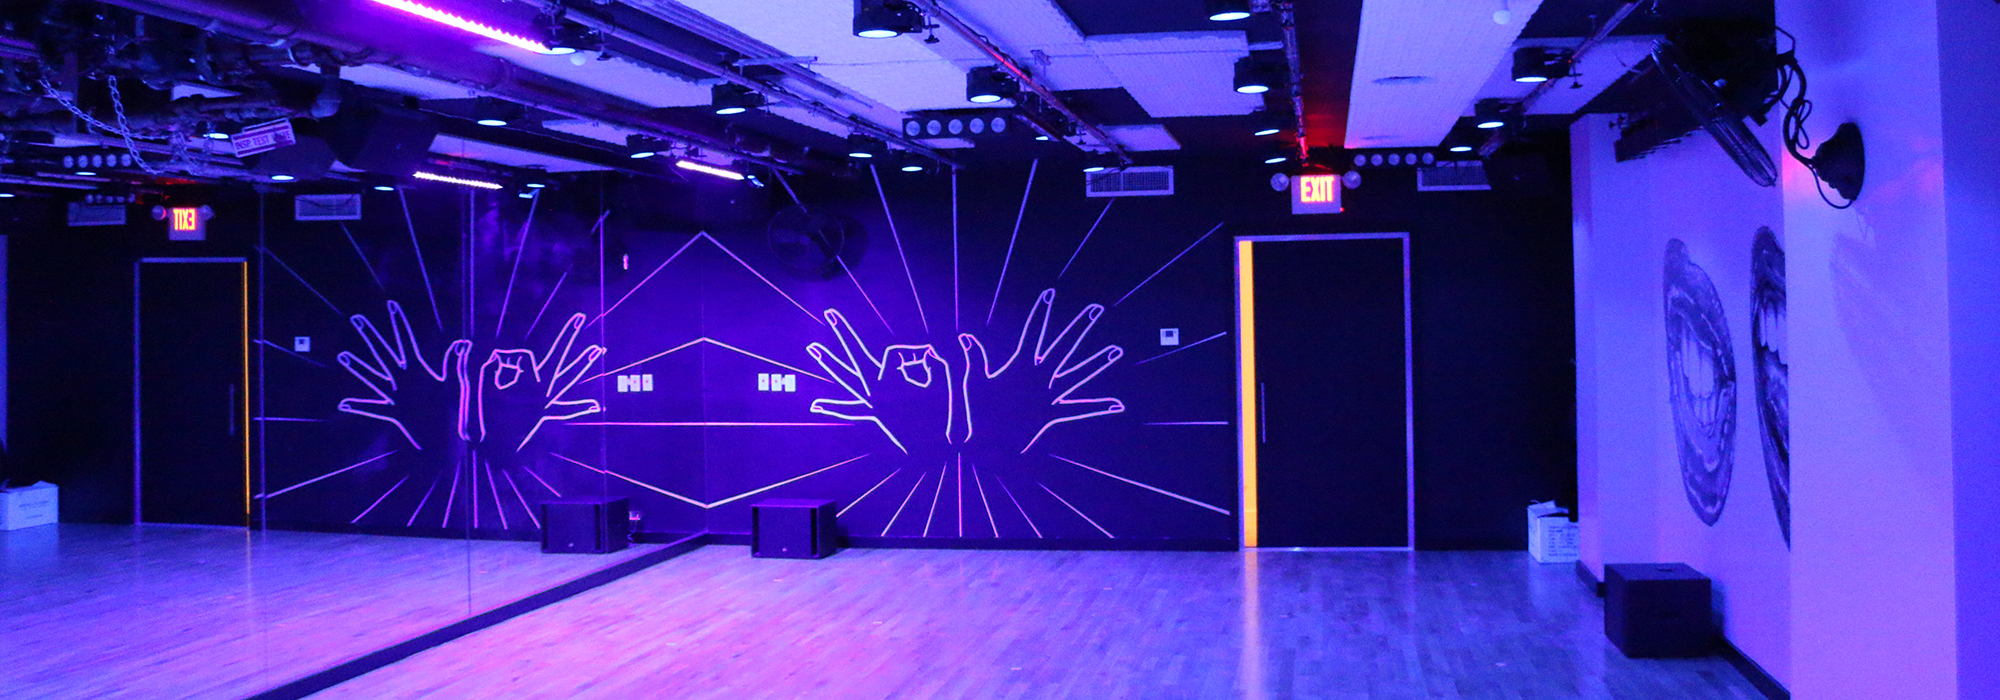 305 Fitness rent workout studio space